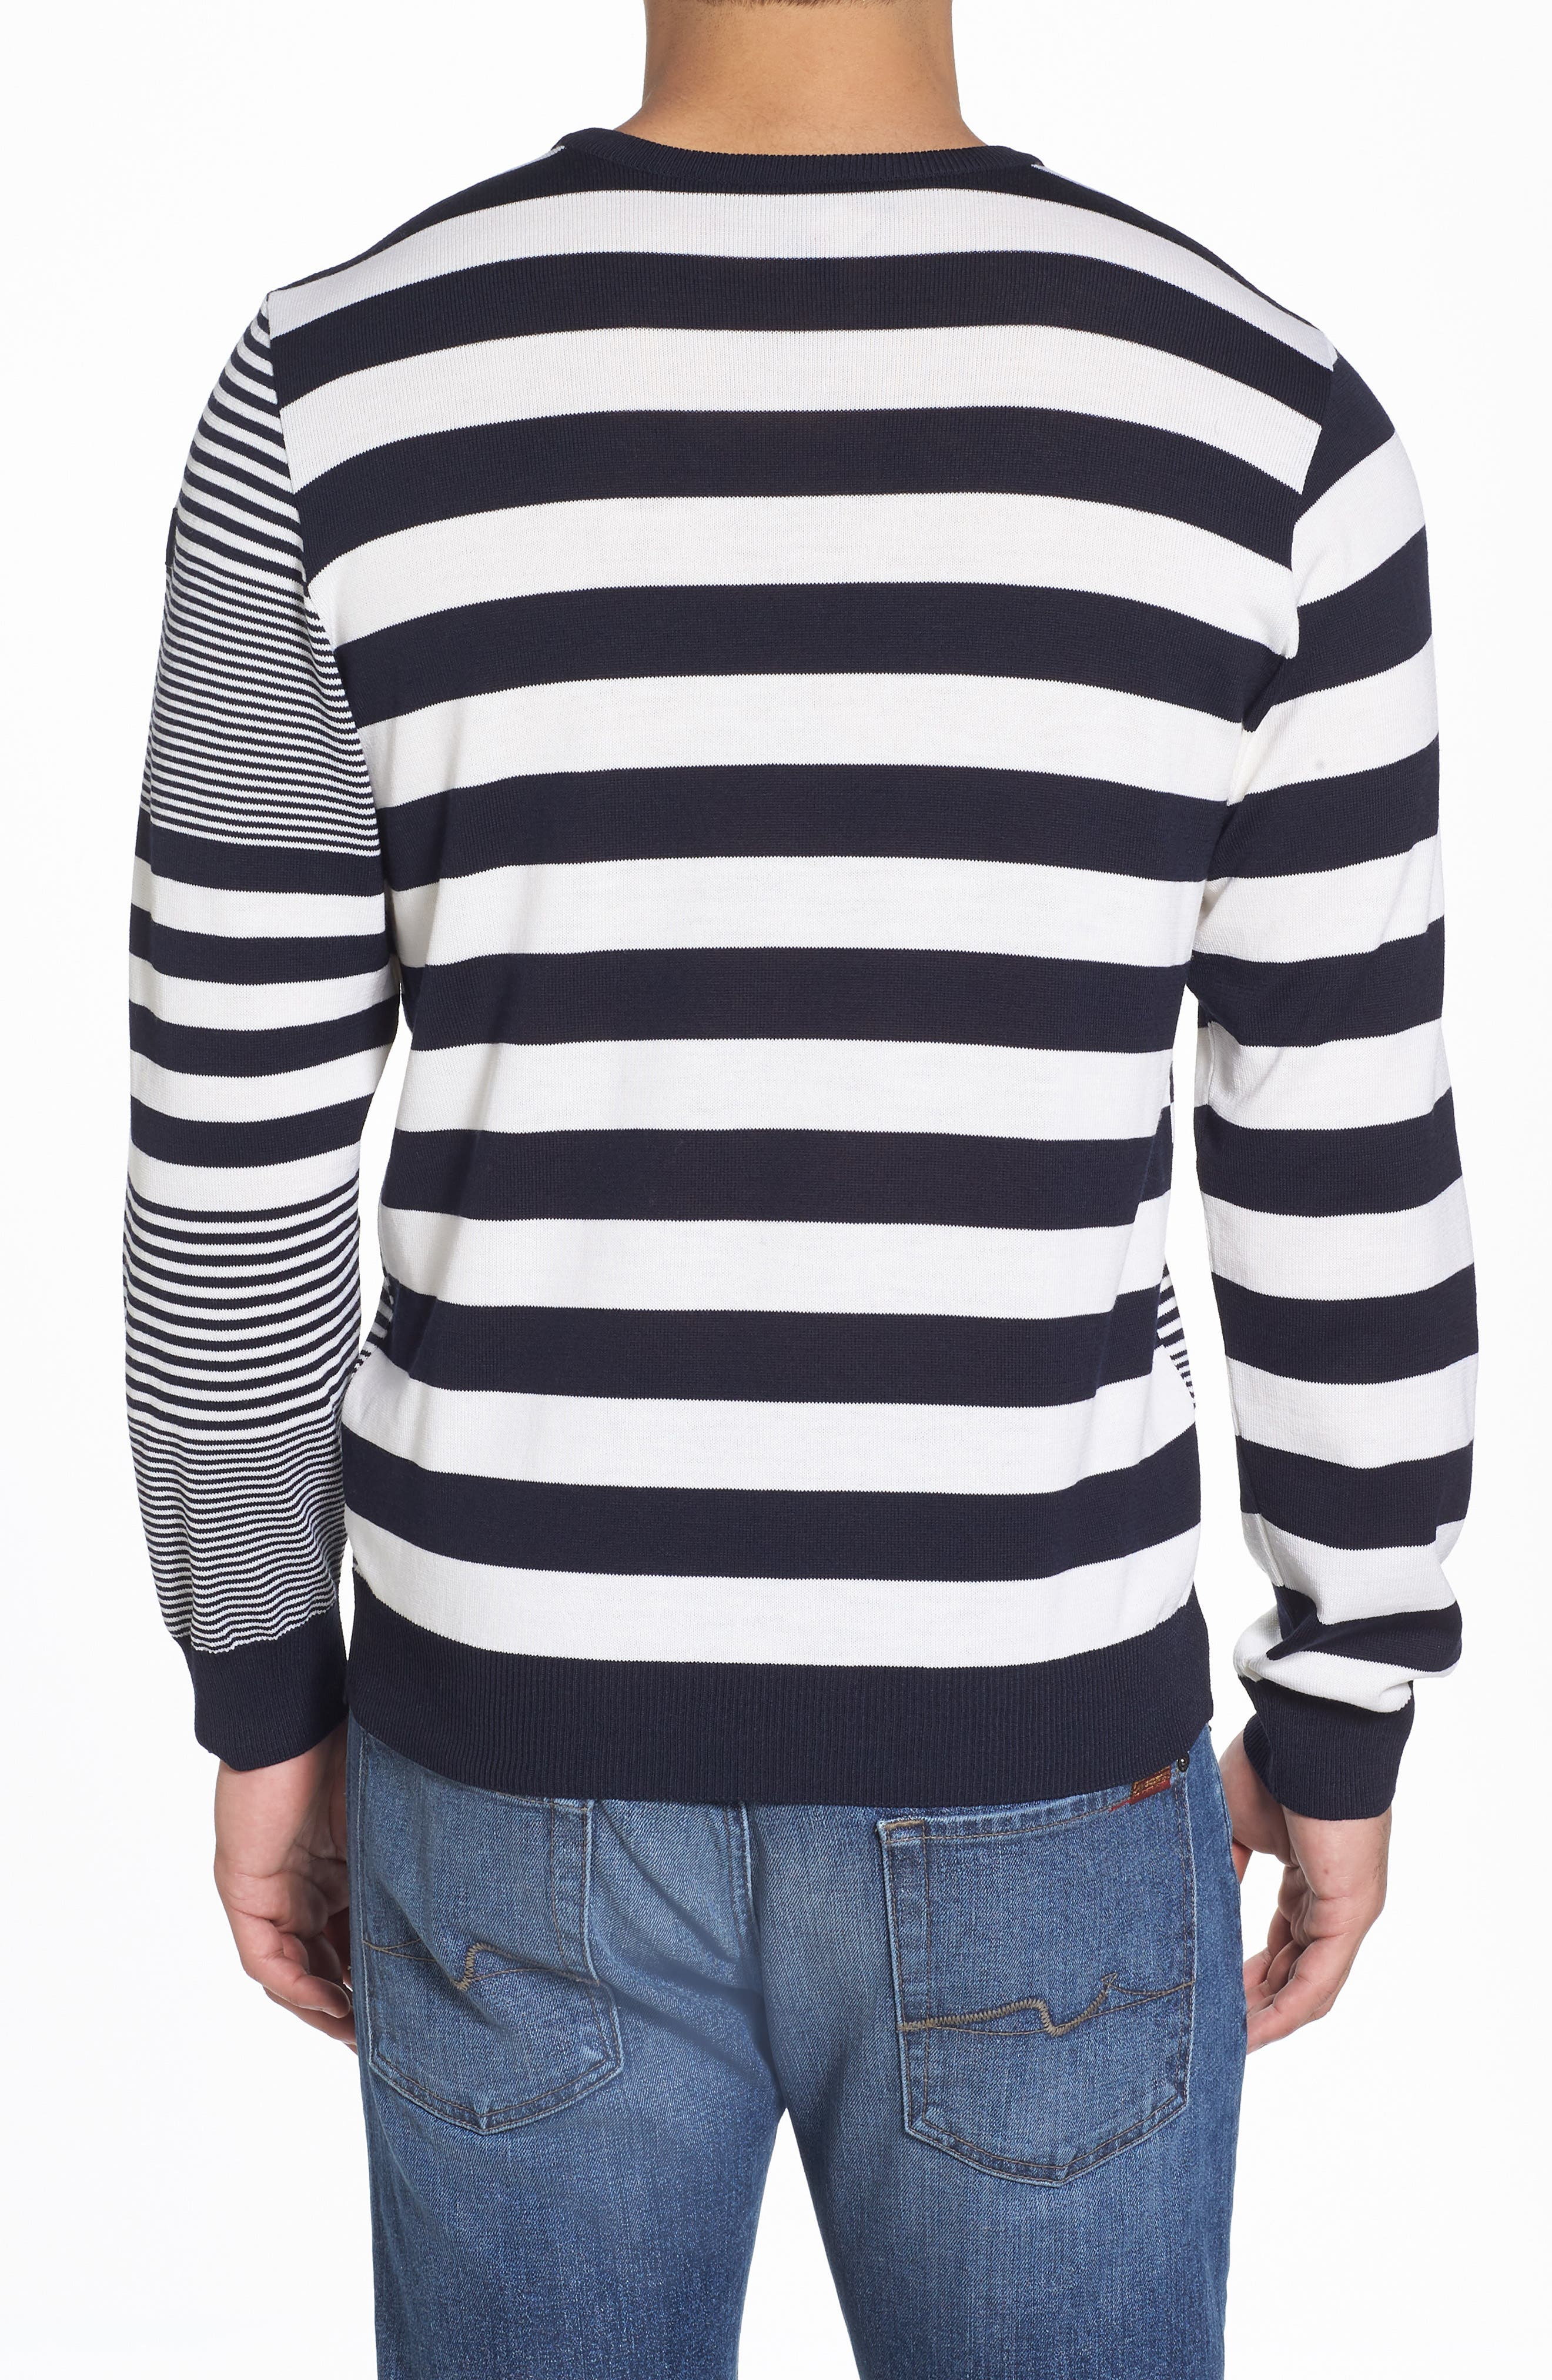 Paul&Shark Stripe Wool Sweater,                             Alternate thumbnail 2, color,                             115